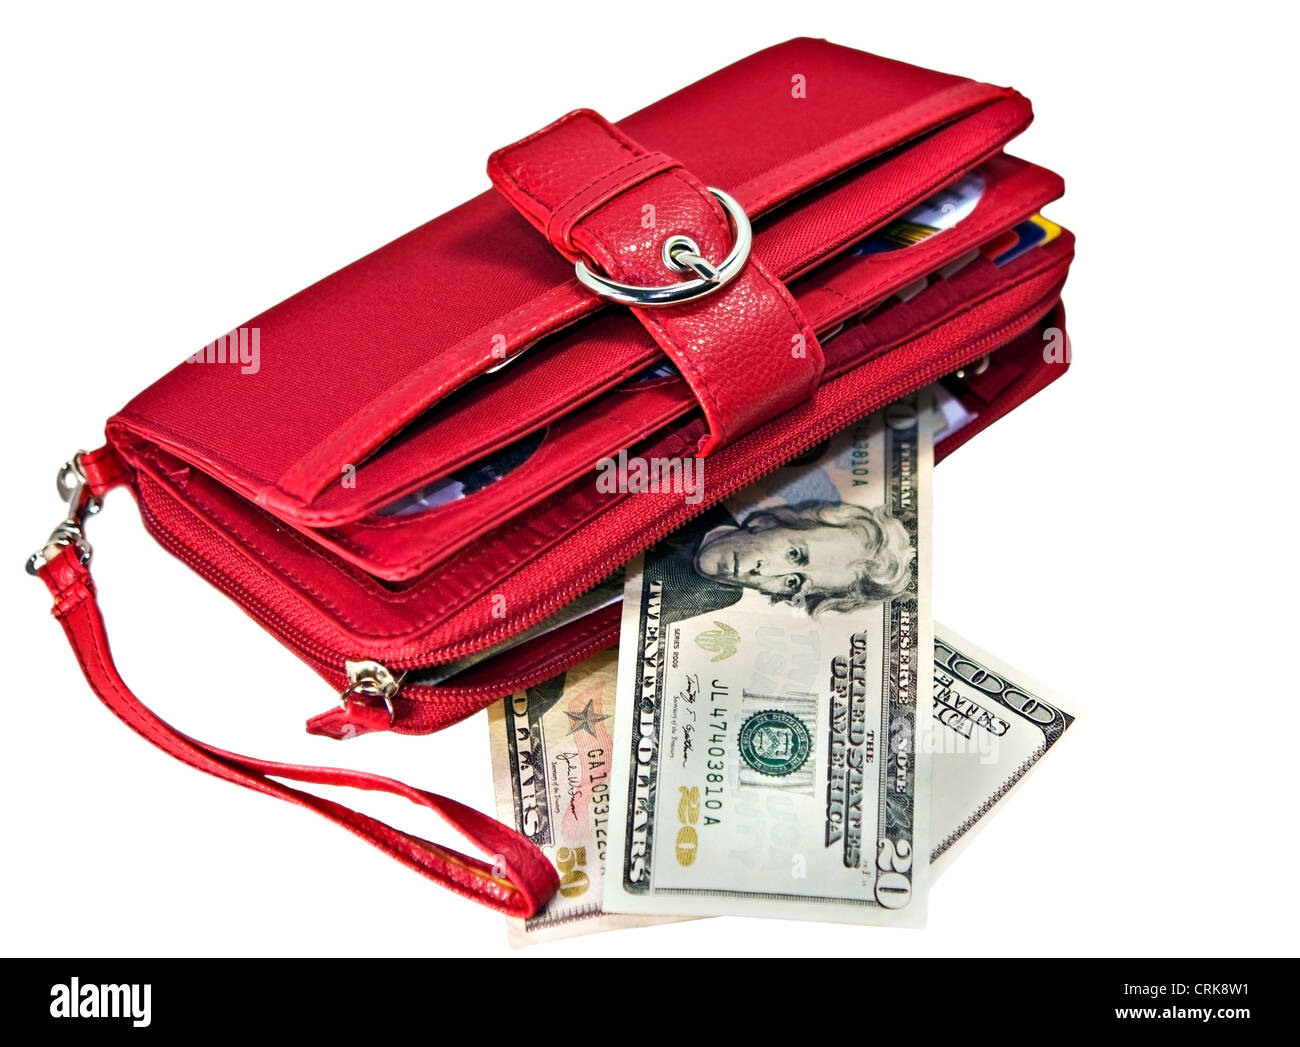 A red wallet with money and charge cards in side. - Stock Image